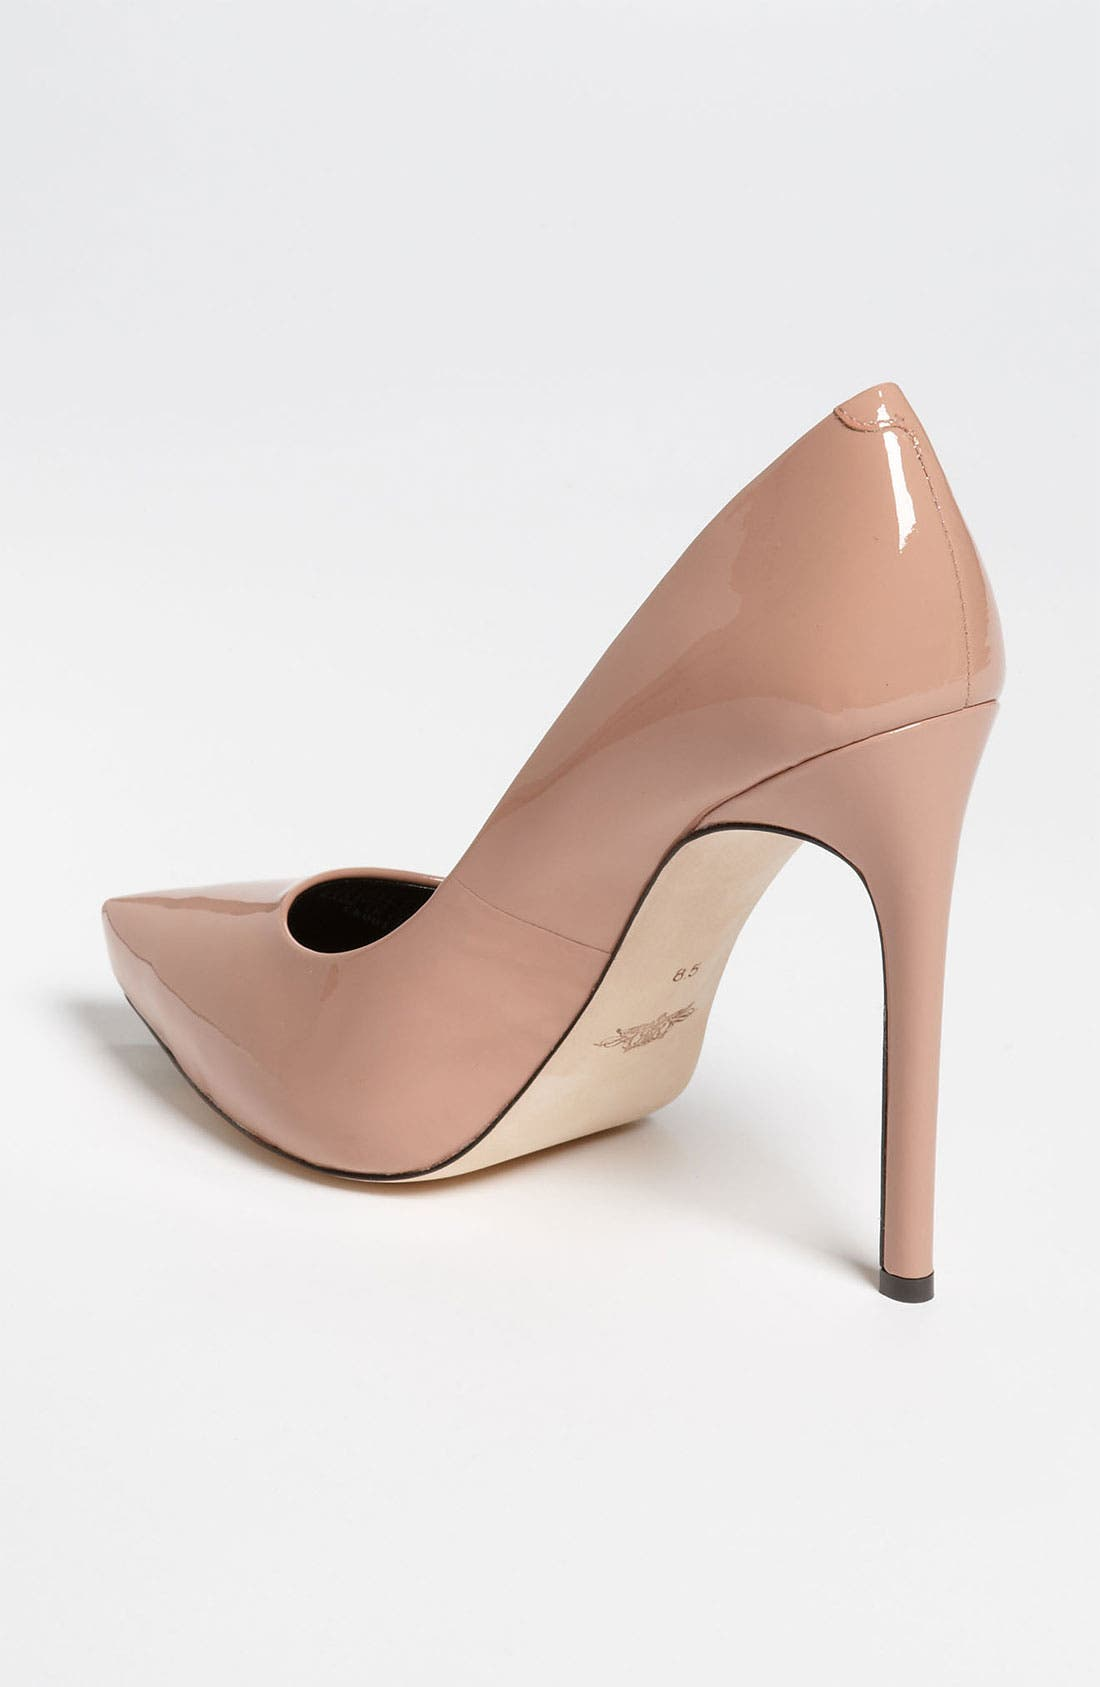 Rachel Roy 'Gardner' Pump,                             Alternate thumbnail 2, color,                             Light Pink Patent